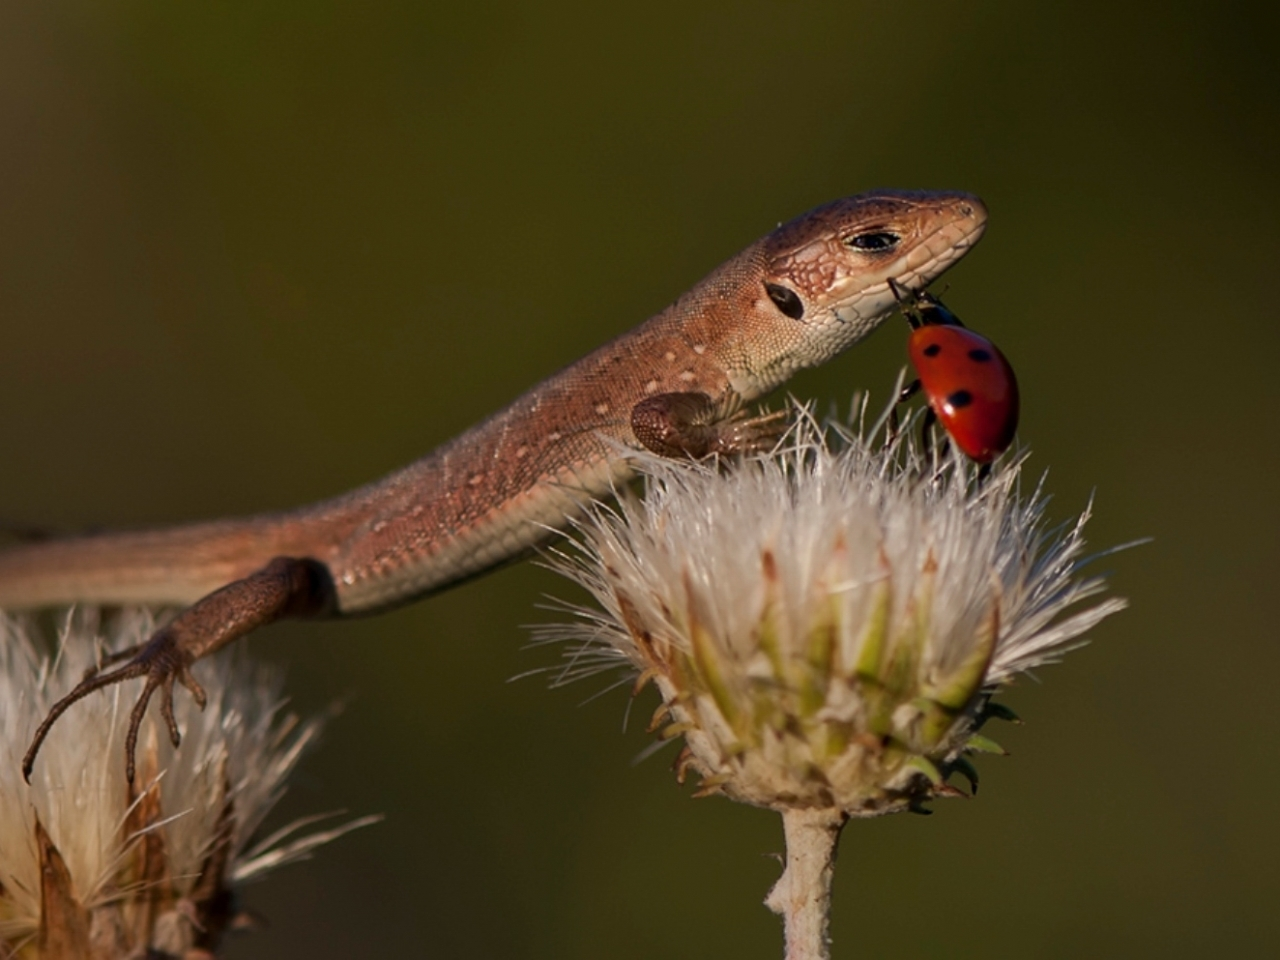 25180 download wallpaper Animals, Insects, Lizards, Ladybugs screensavers and pictures for free